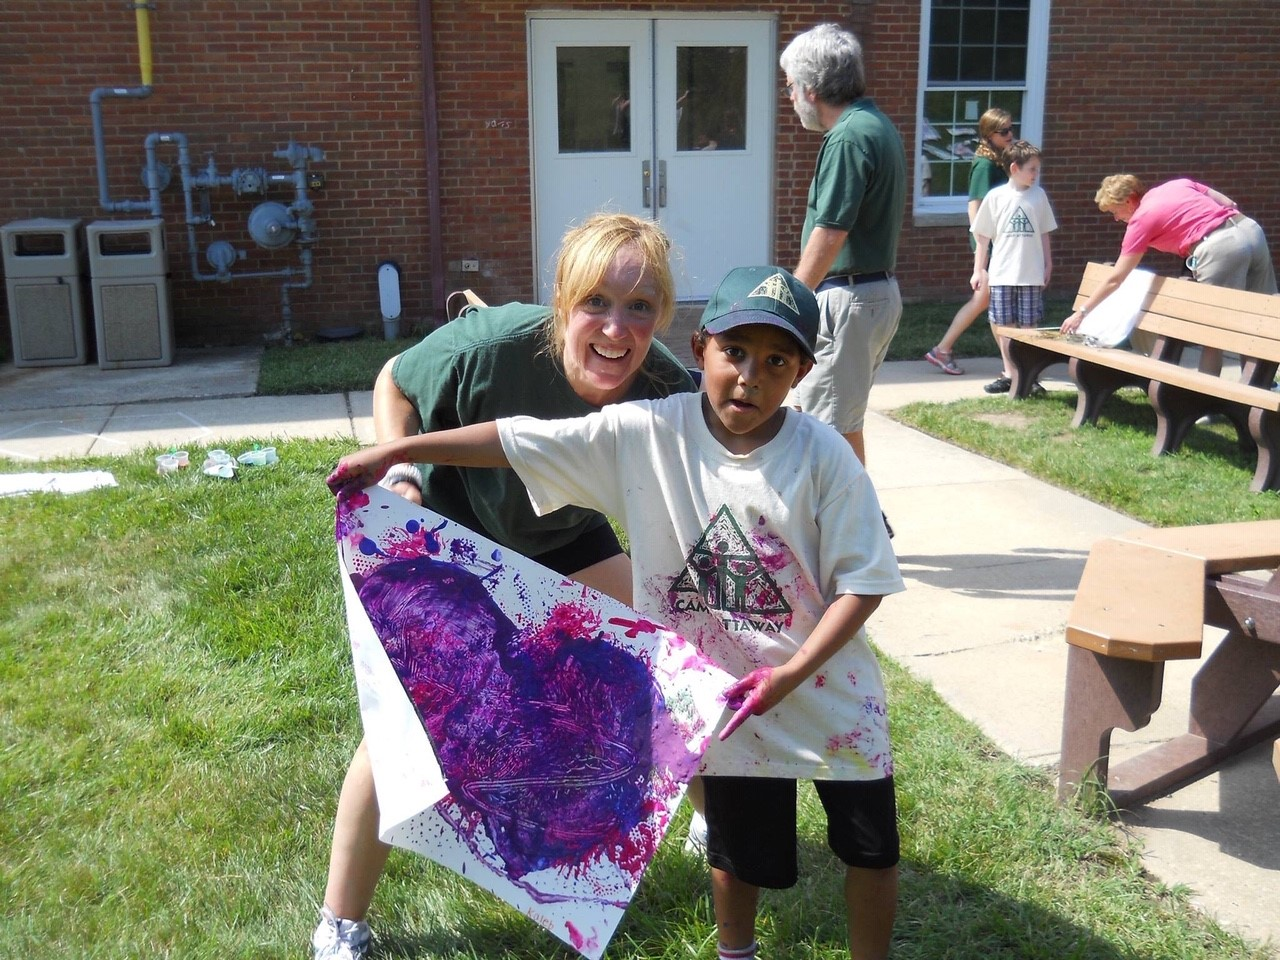 a young boy holds a painted purple heart poster posing with a camp counselor